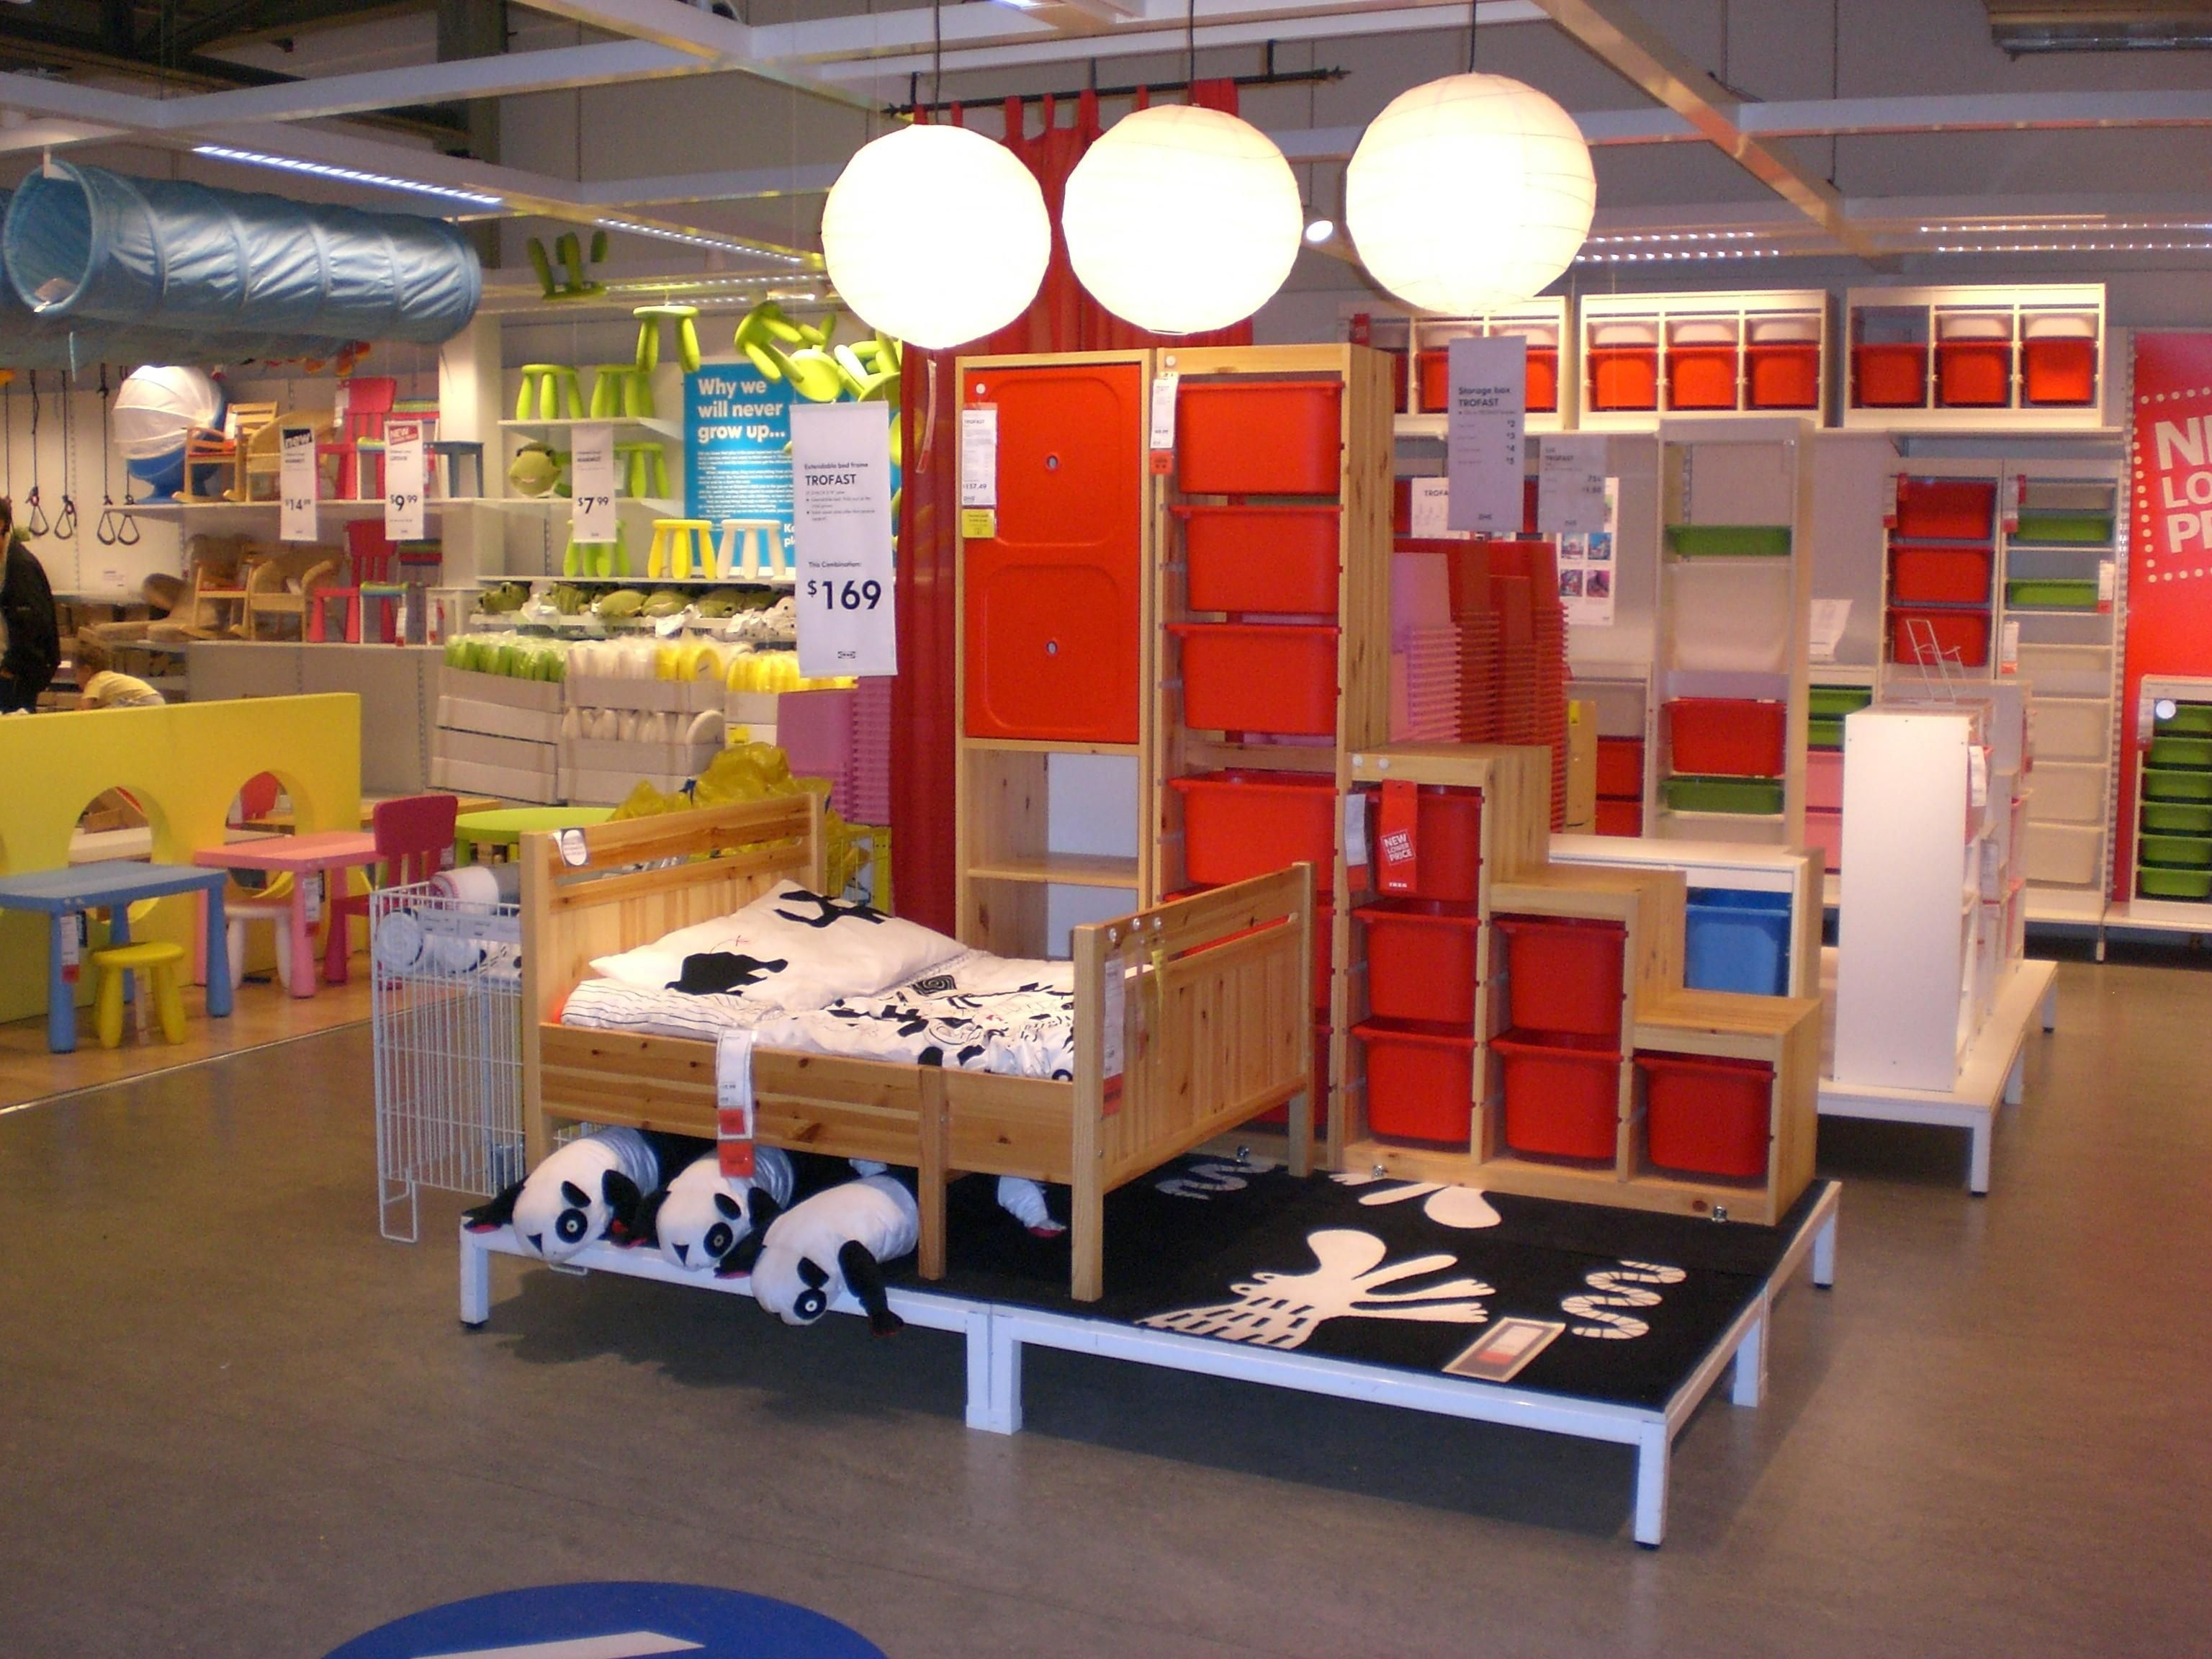 ikea kids showroom Google Search ikea